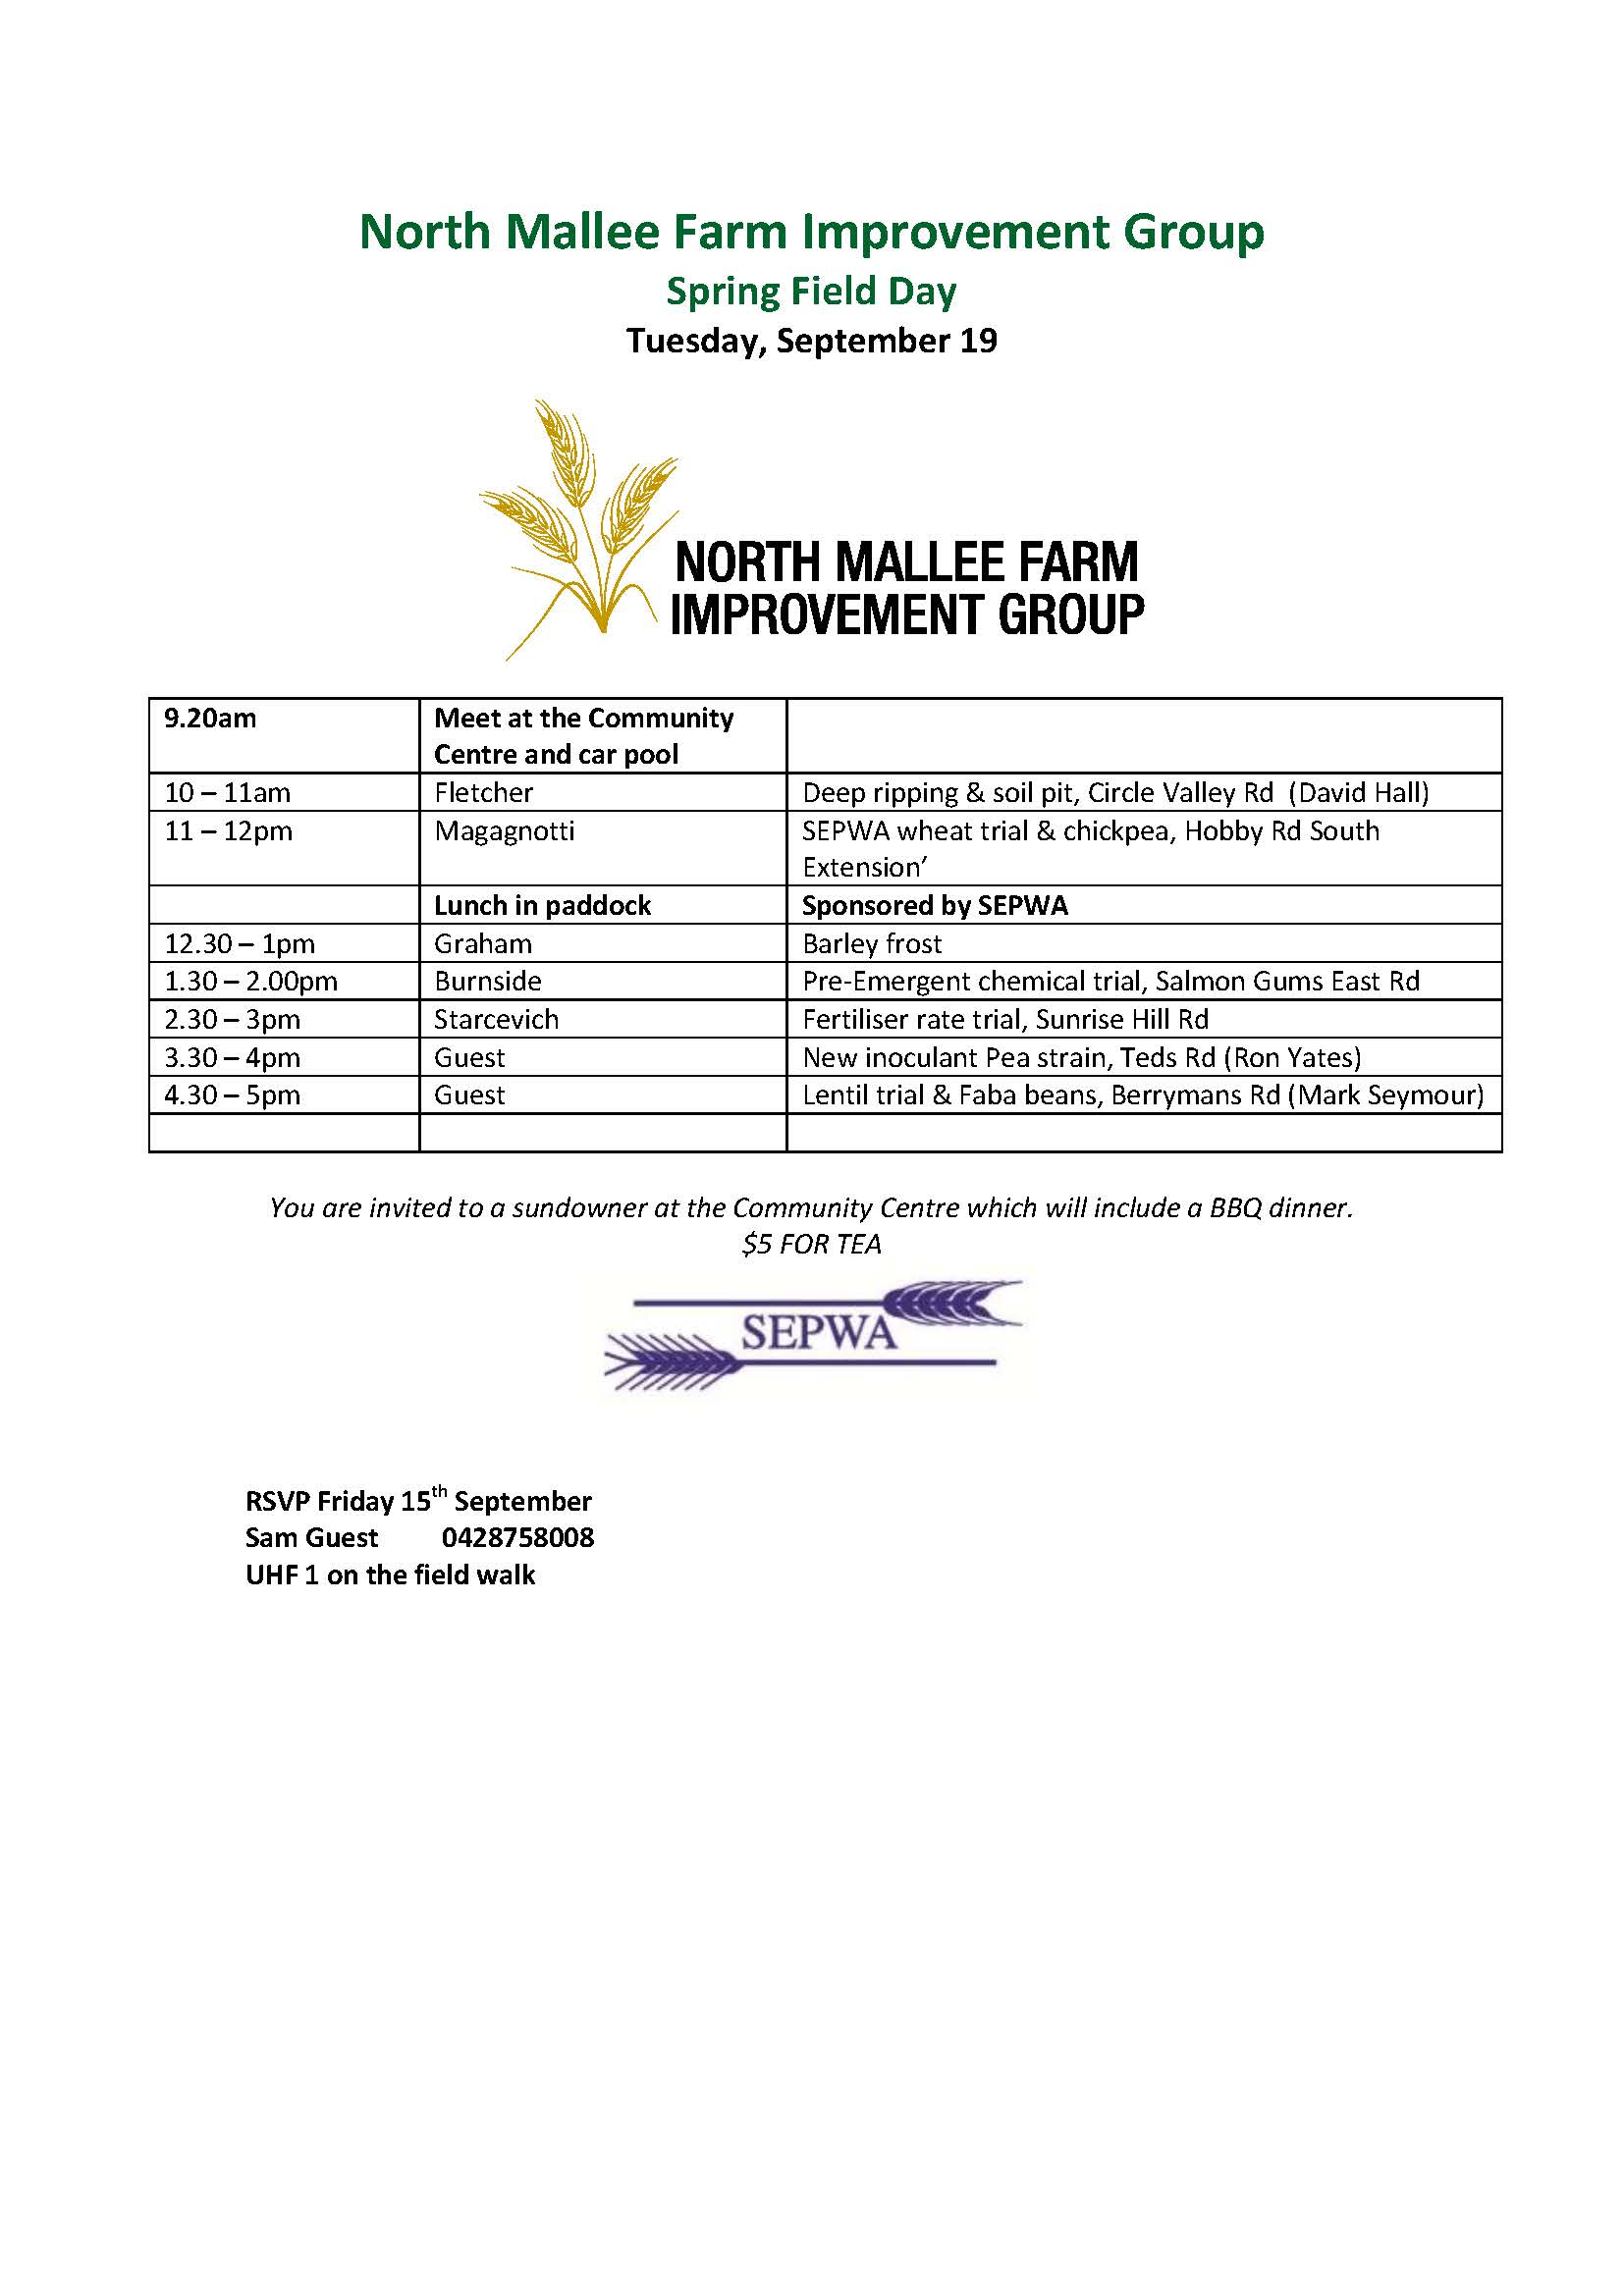 North Mallee Farm Improvement Group Spring Fd final